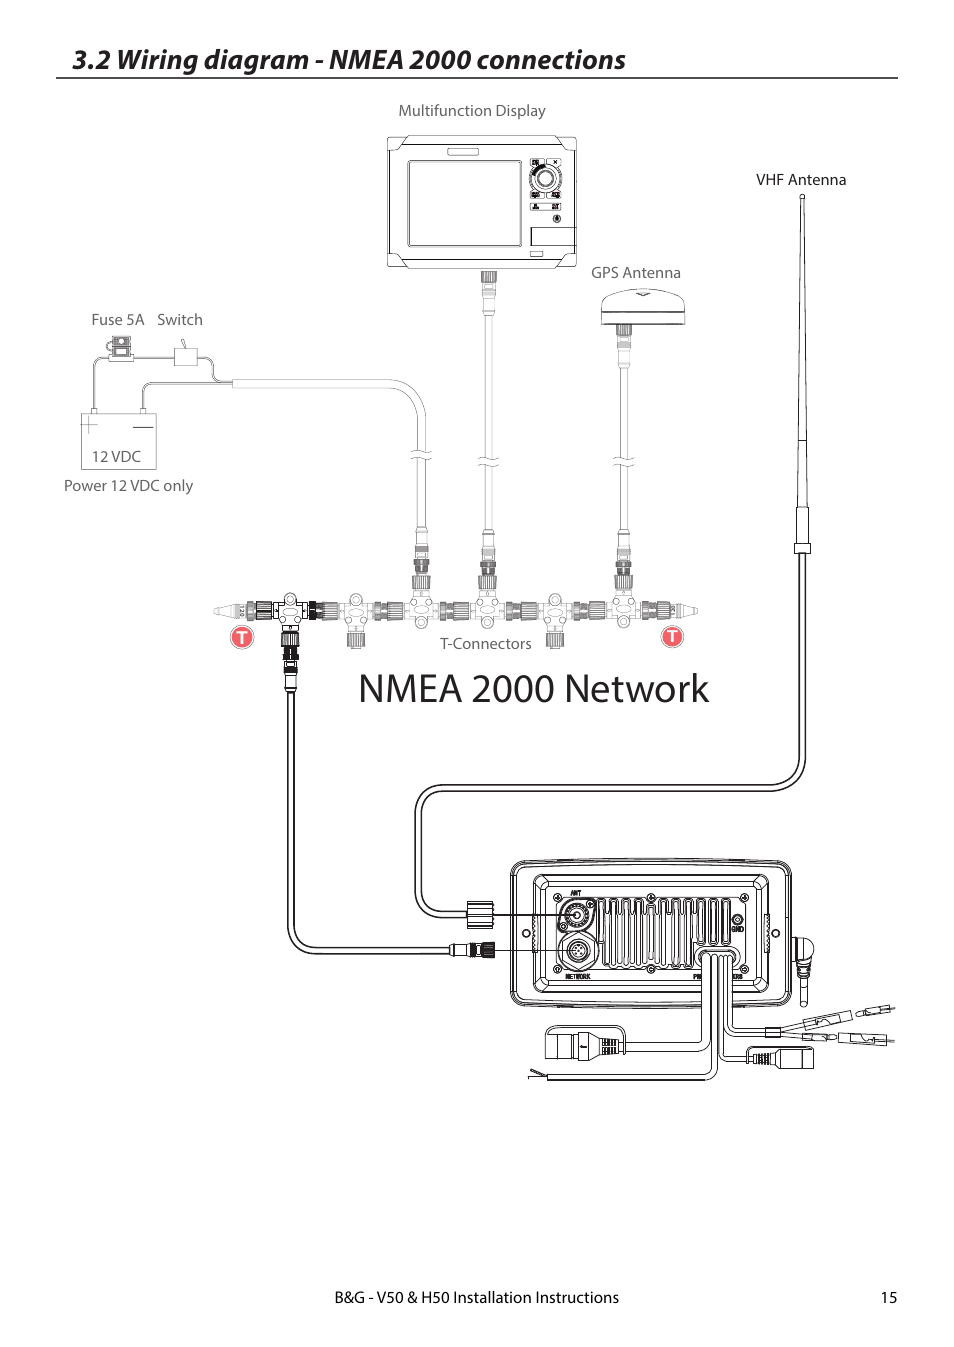 hight resolution of 2 wiring diagram nmea 2000 connections nmea 2000 network vhf antenna link8 vhf b g h50 wireless vhf handset user manual page 15 22